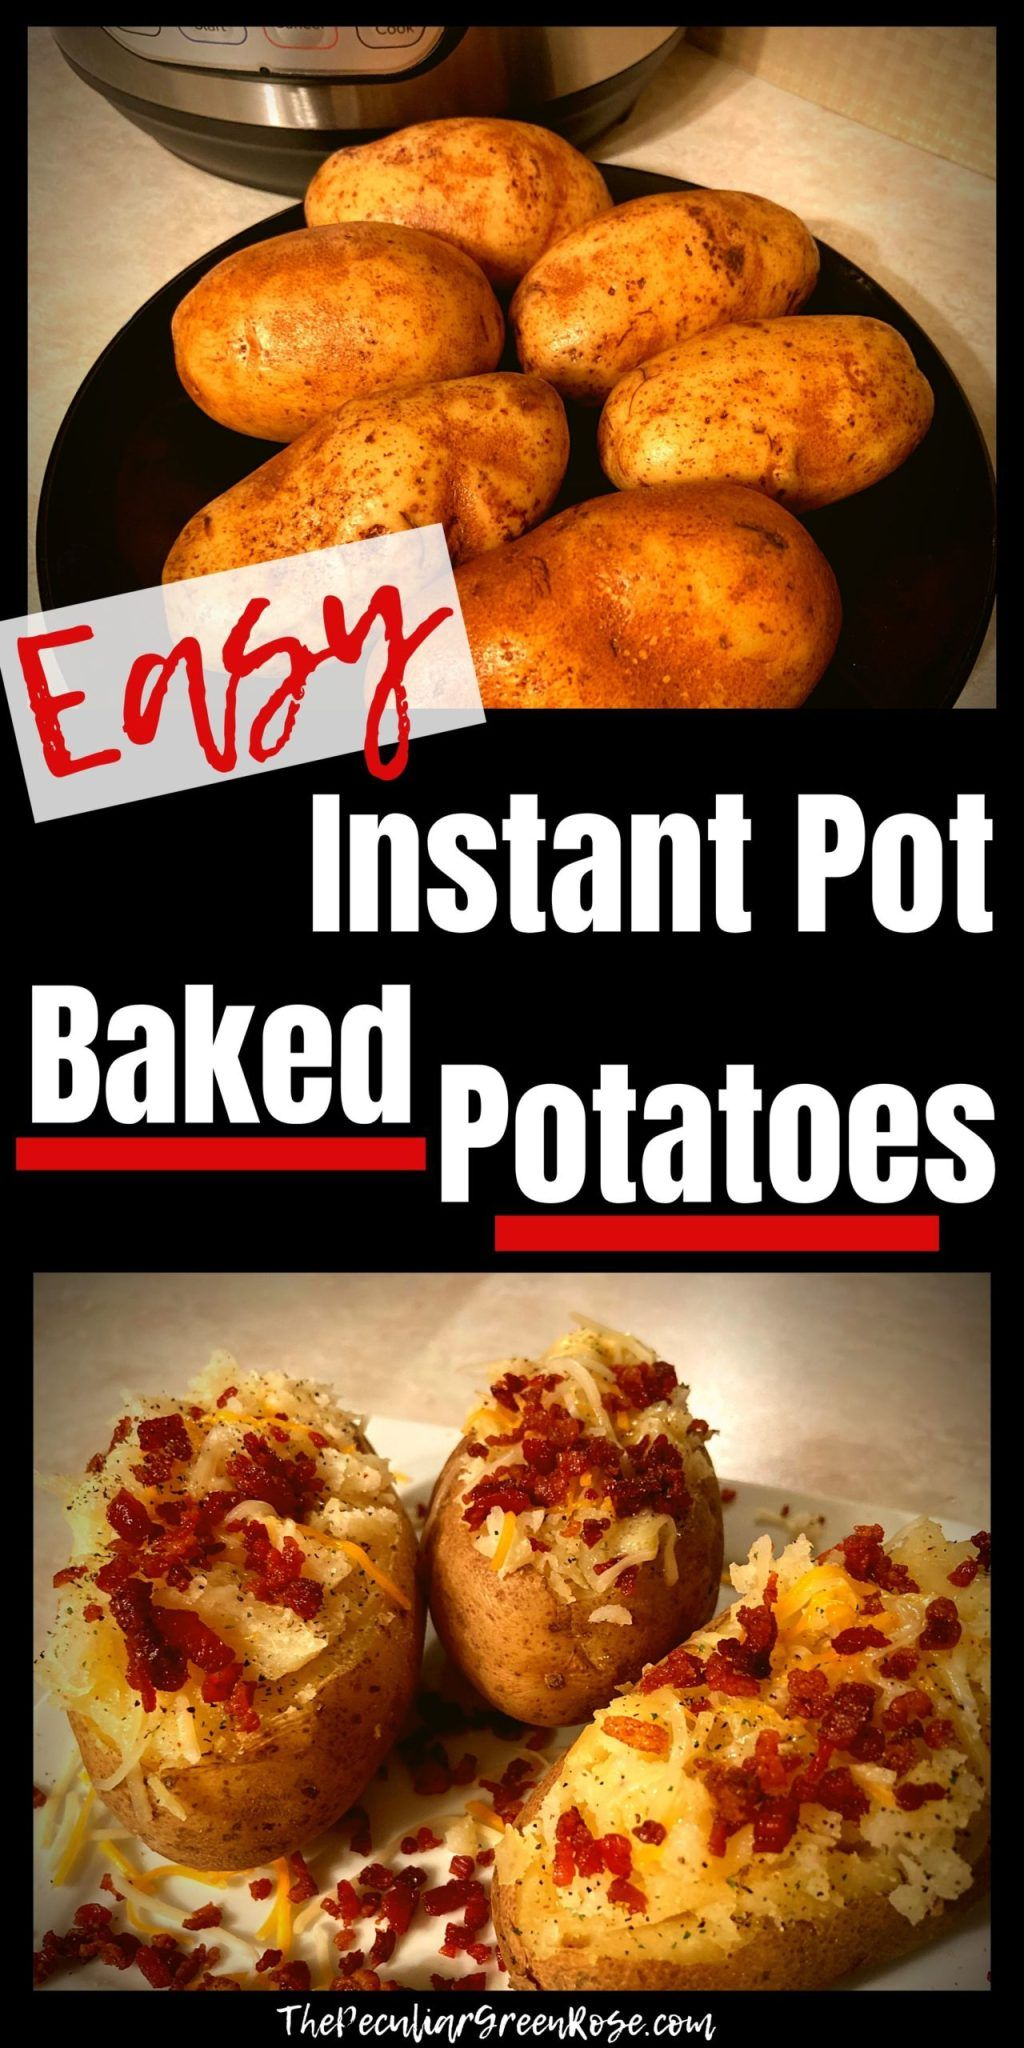 Instant Pot Baked Potatoes - The Peculiar Green Rose